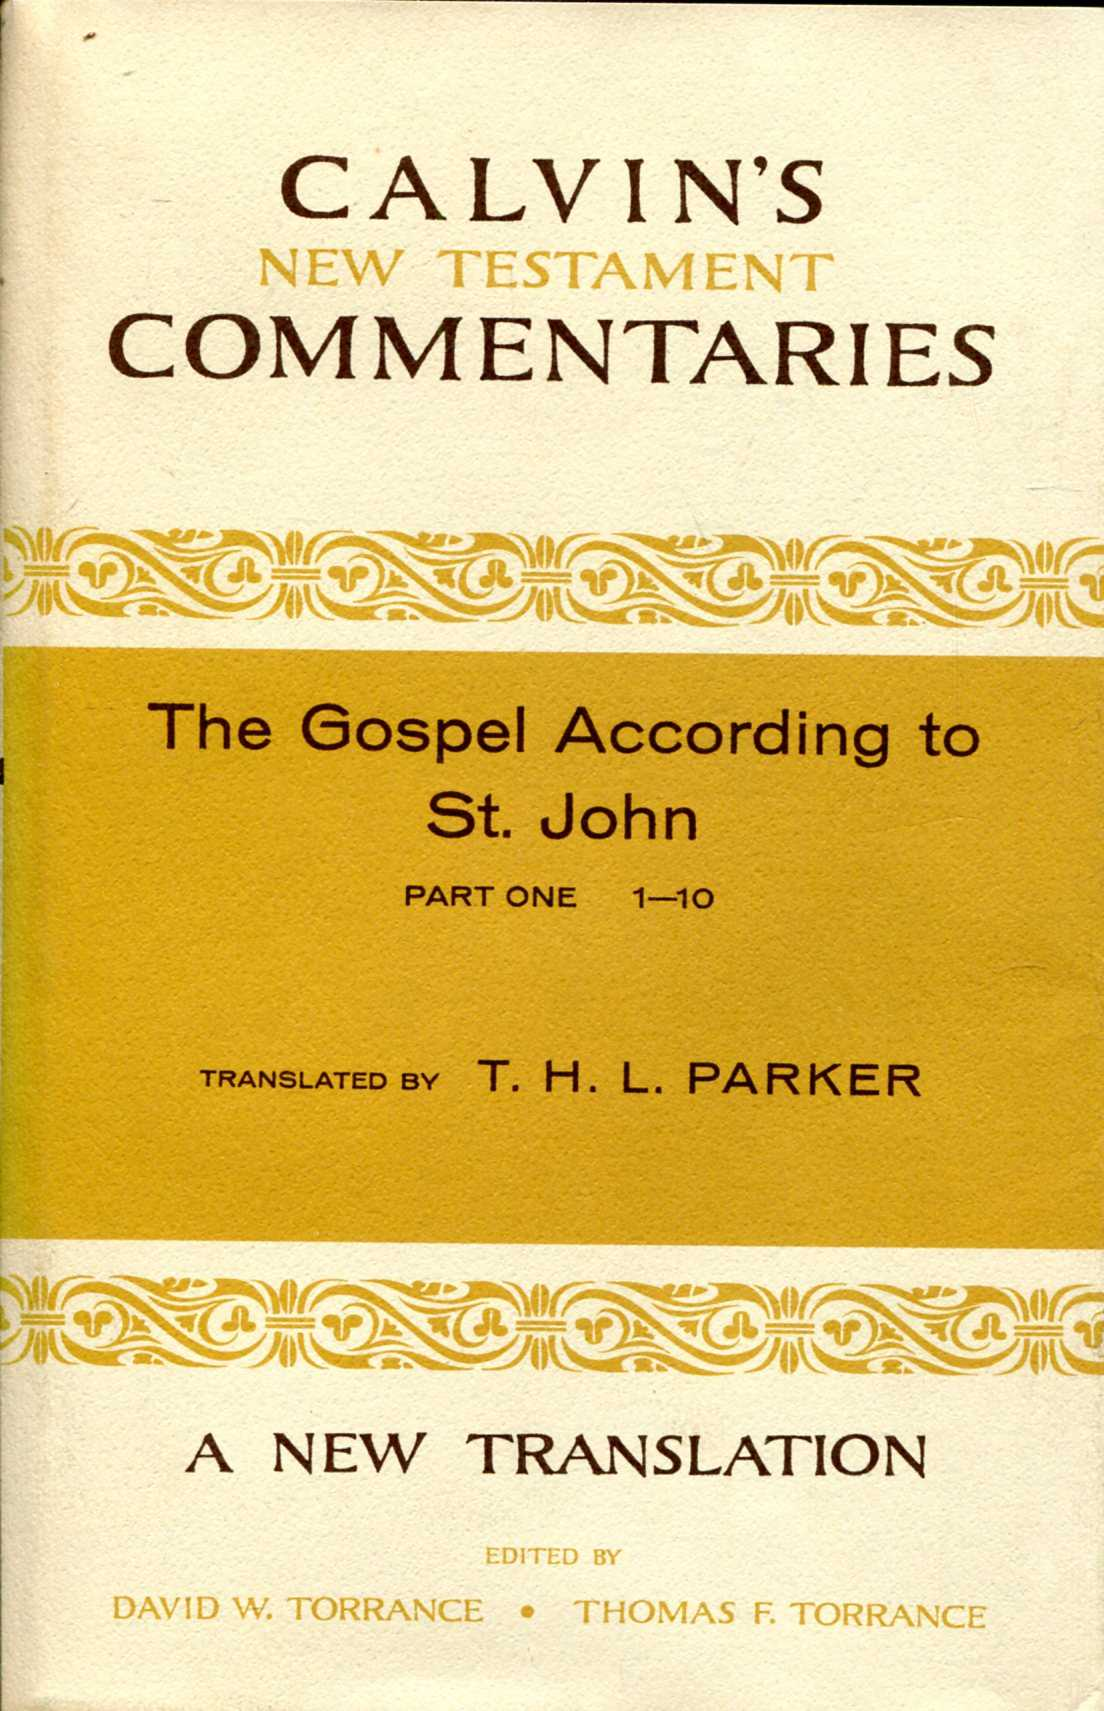 Image for The Gospel According to St. John 1-10 (Calvin's New Testament Commentaries)